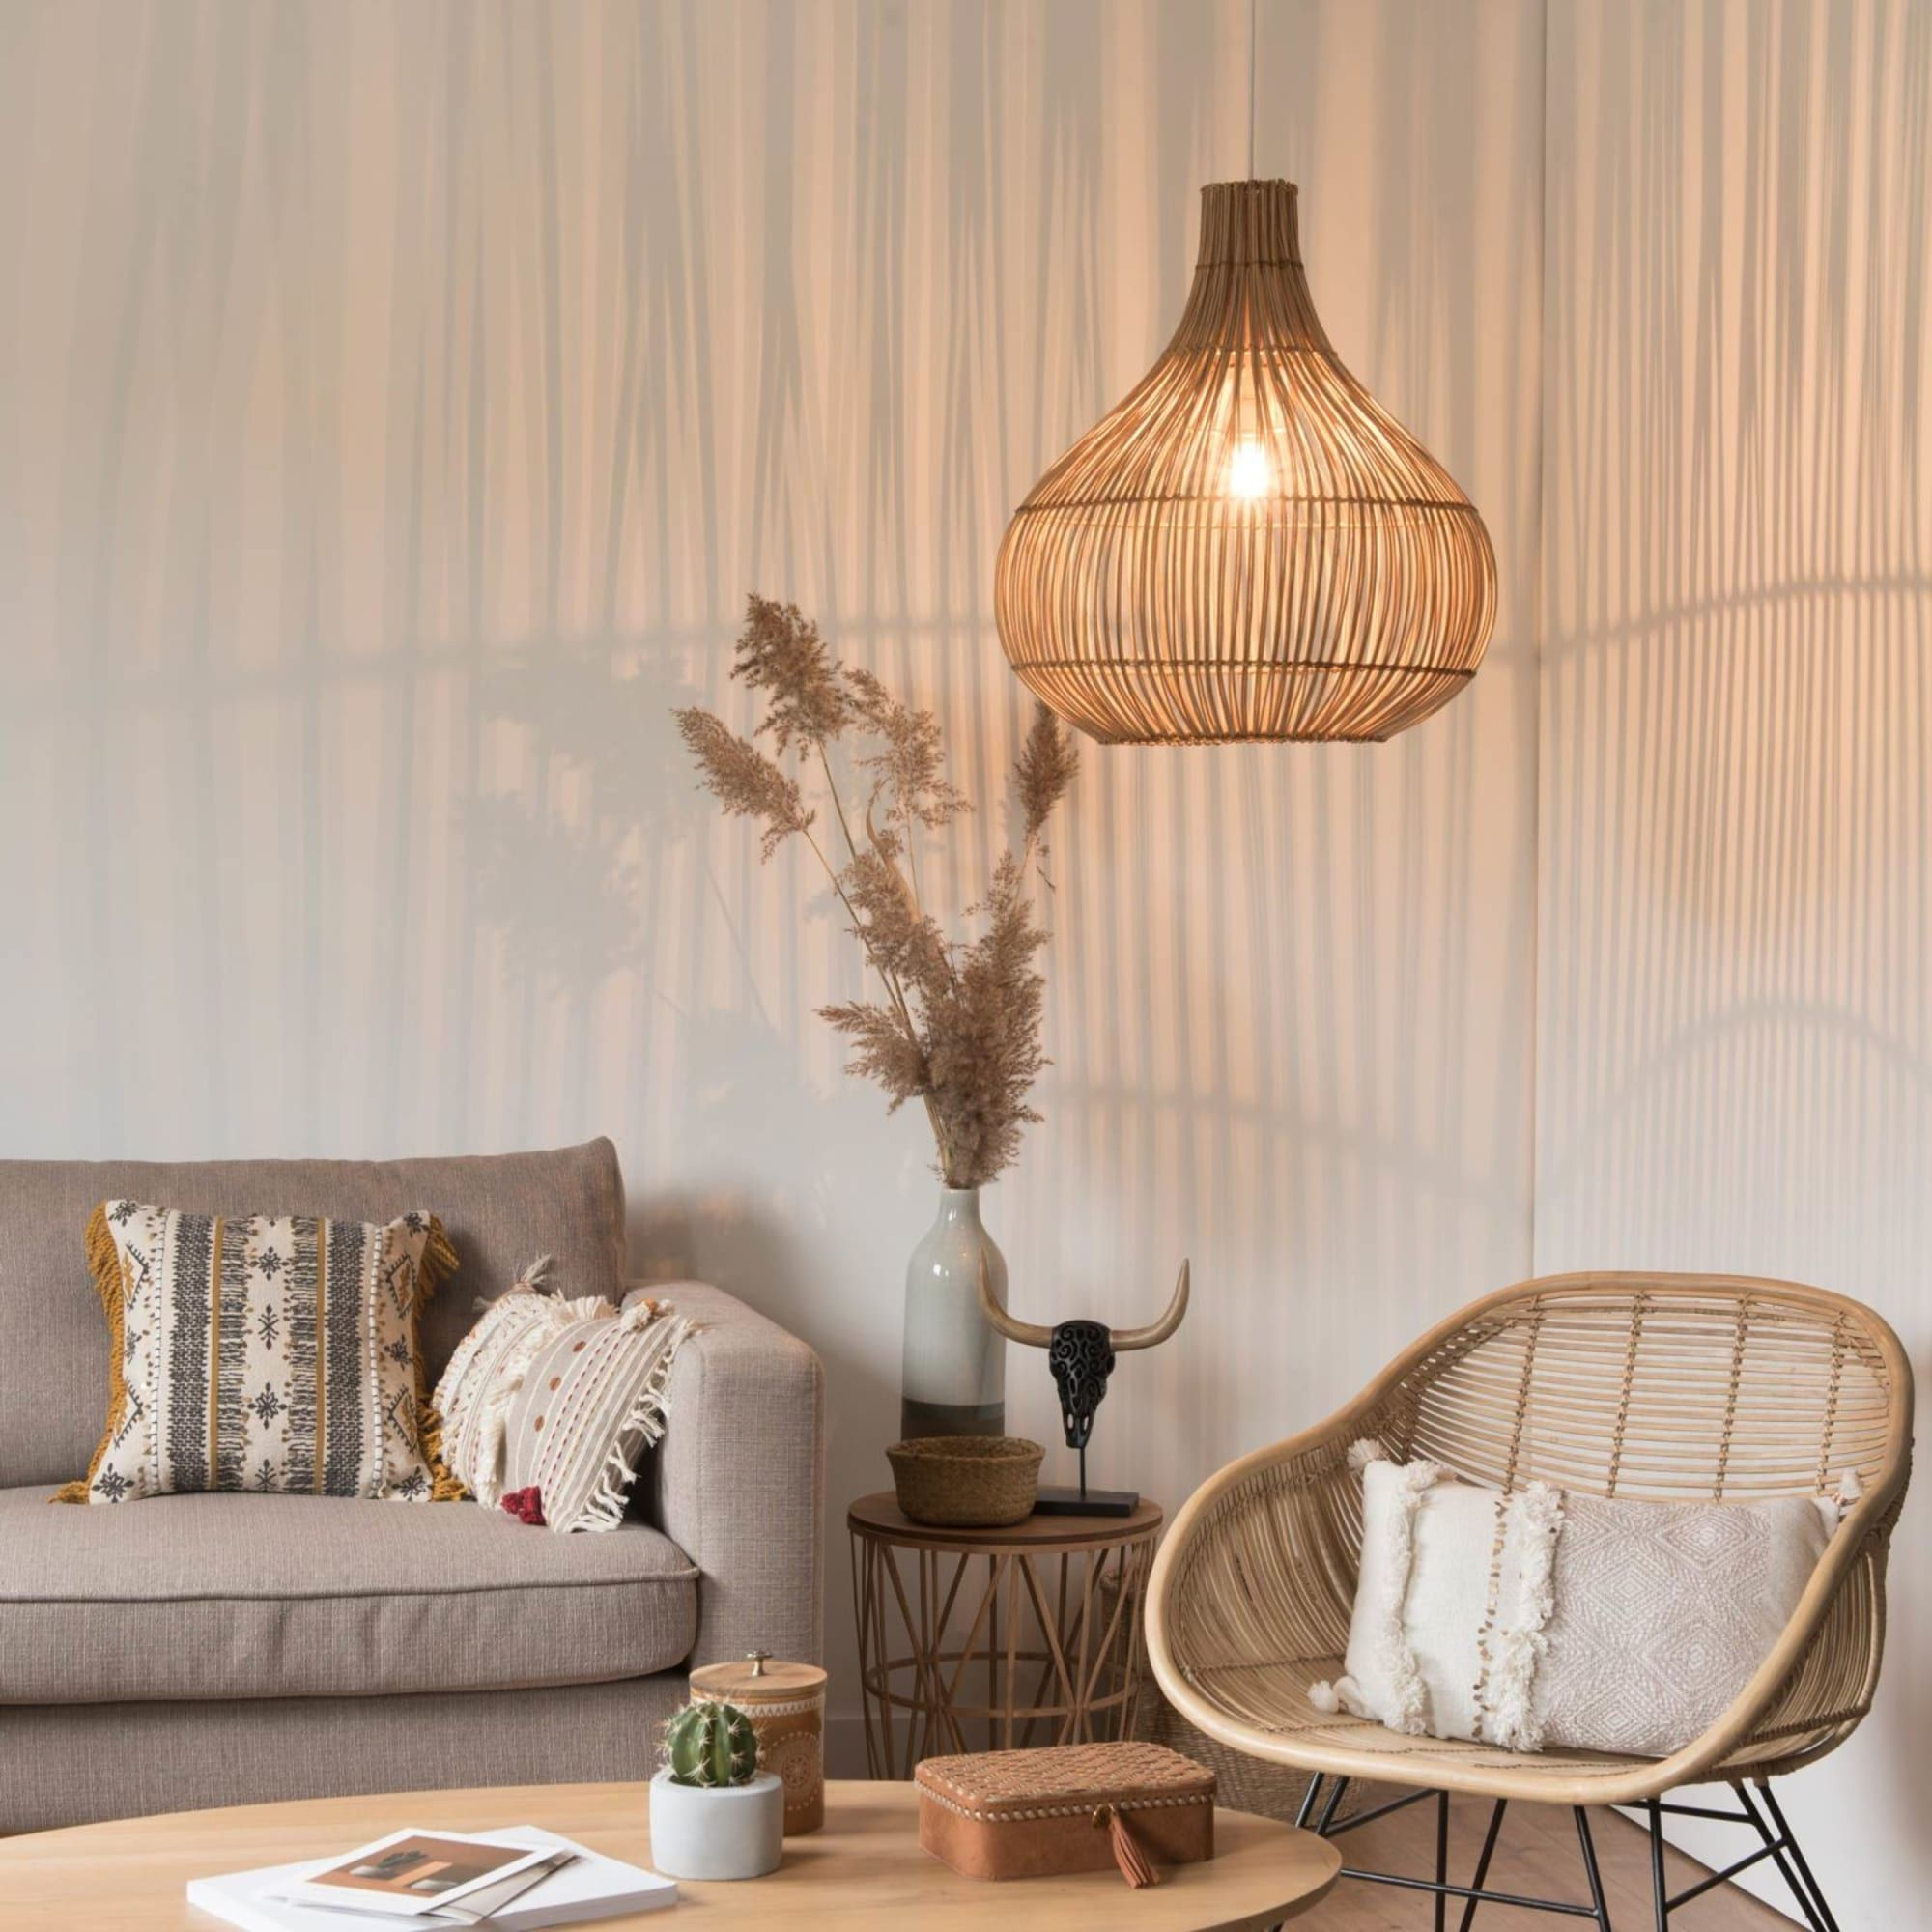 La Maison Du Monde Bilbao woven plant fibre pendant in 2020 | decor, soft furnishings